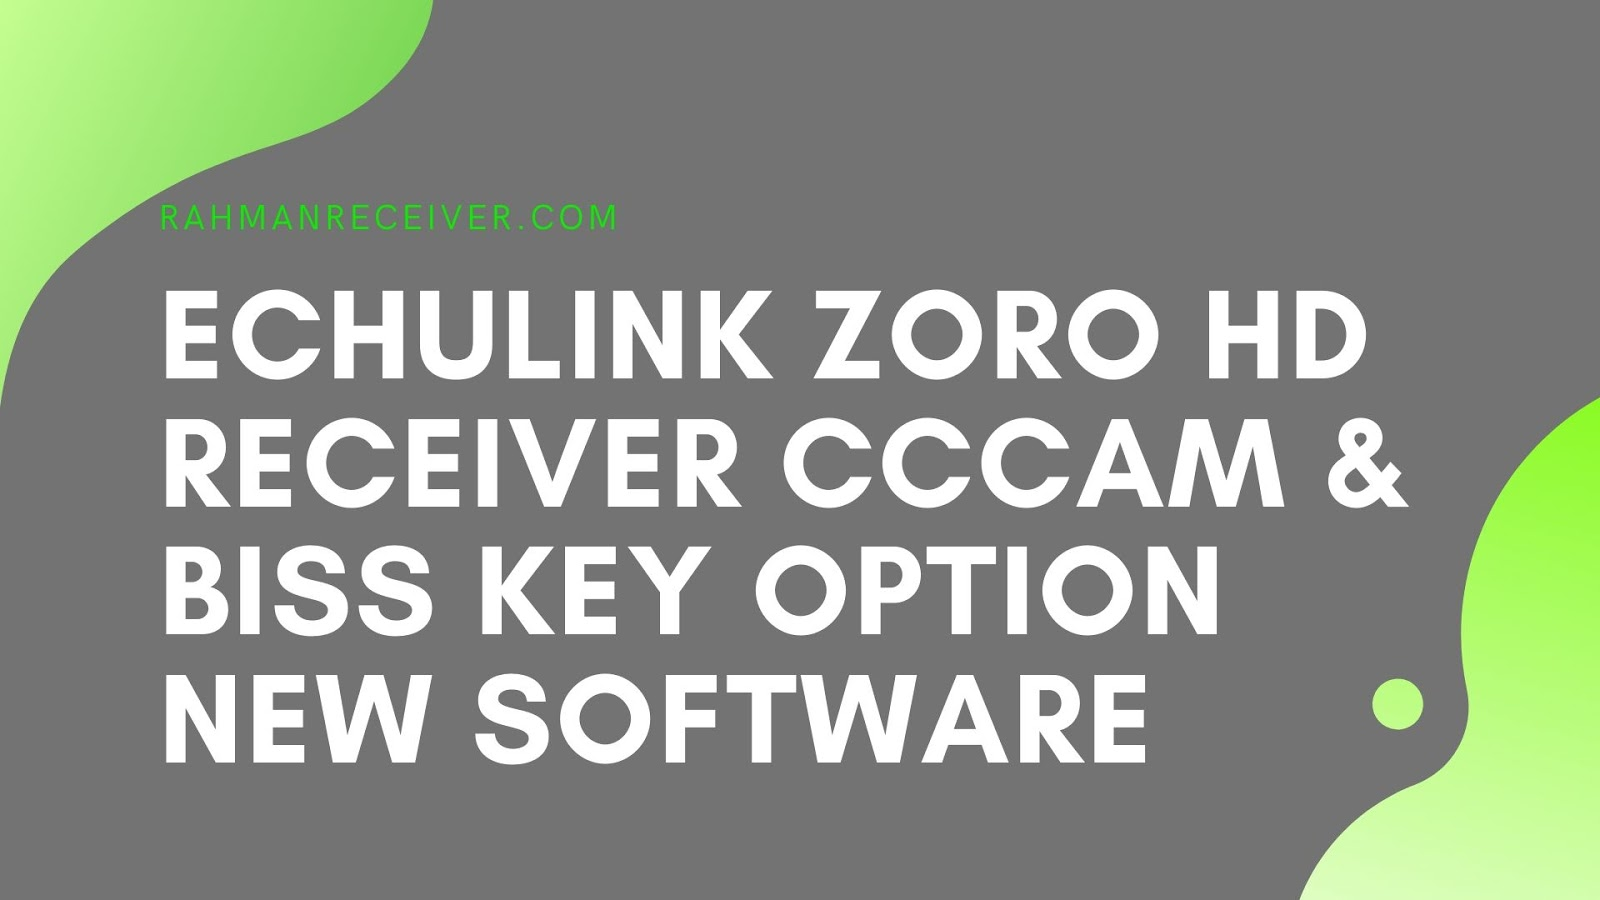 ECHOLINK ZORO HD RECEIVER CCCAM & BISS KEY OPTION NEW SOFTWARE 18 OCTOBER 2019